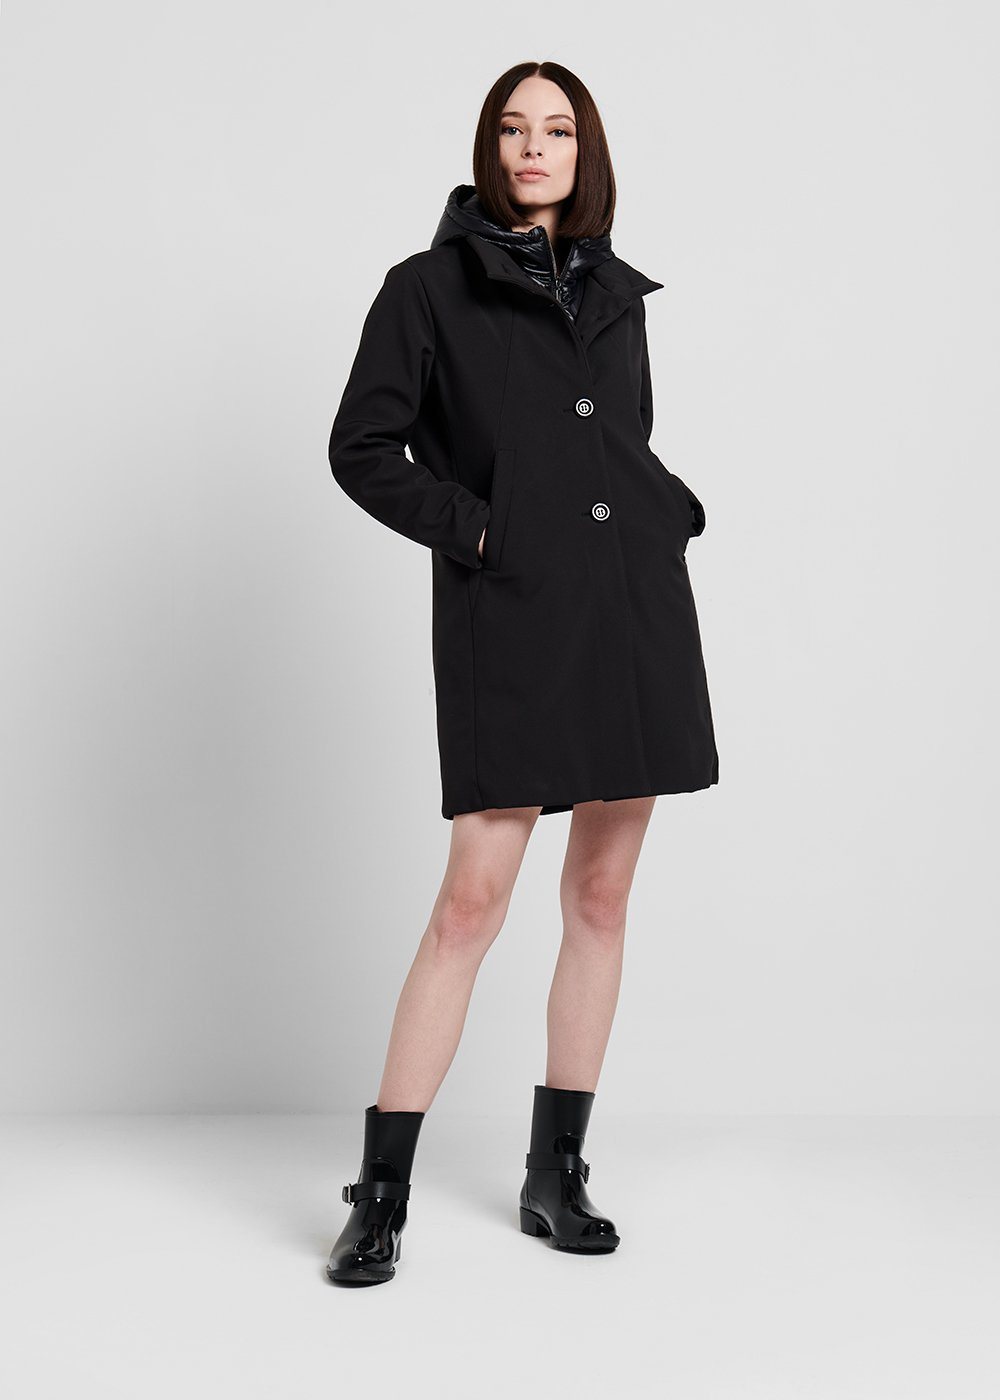 Conan coat in technical fabric with nylon bib - Black - Woman